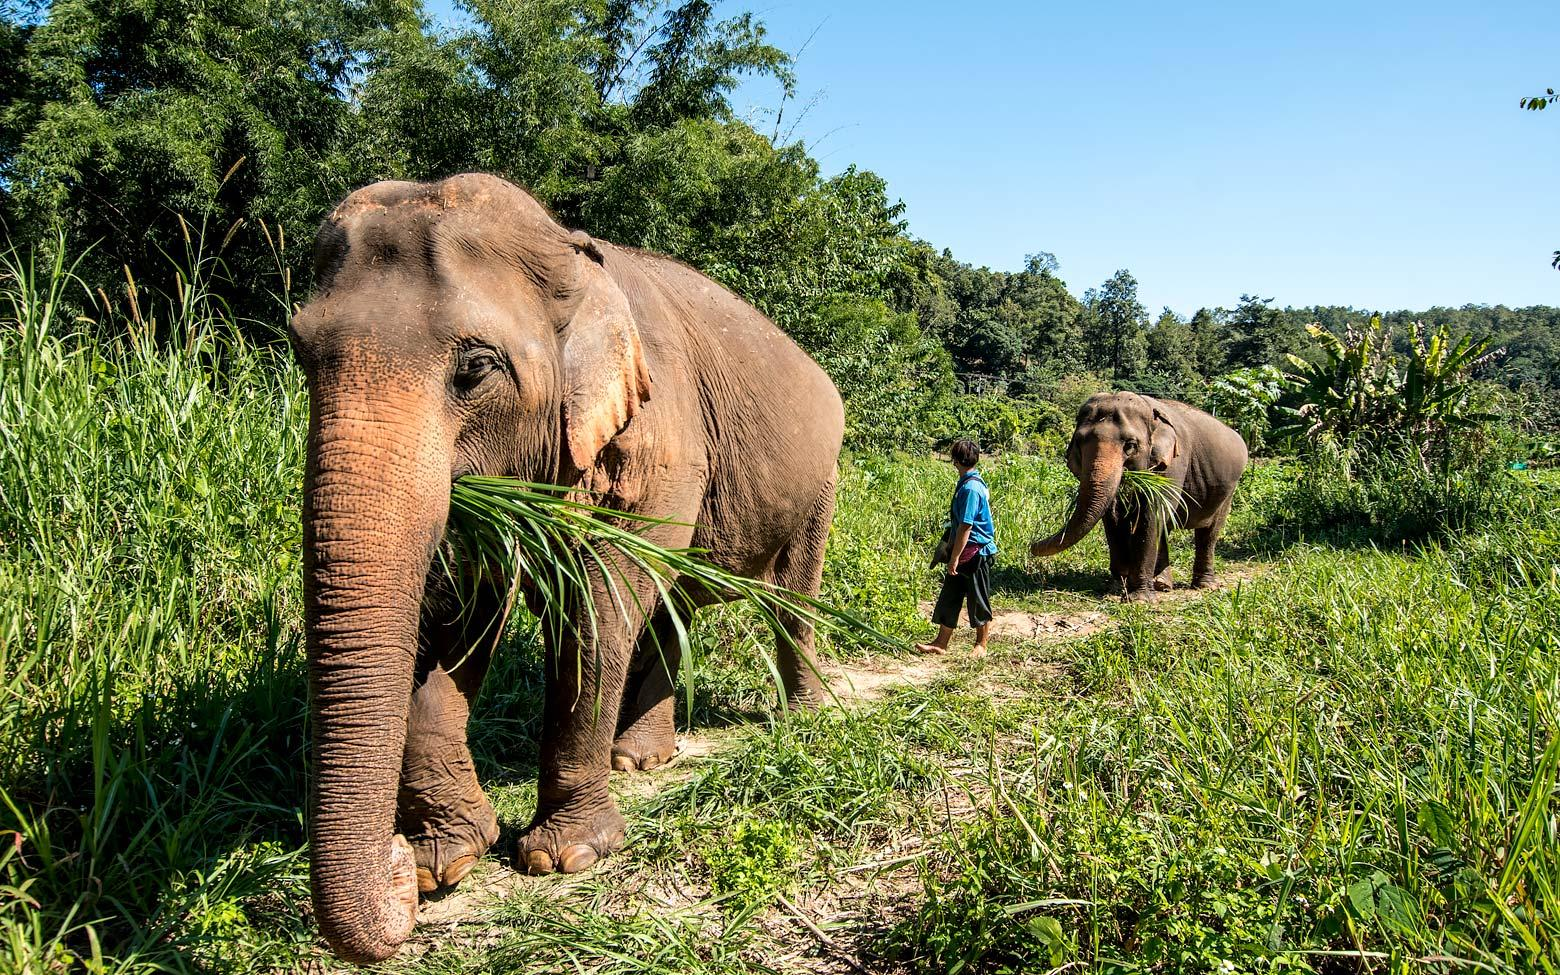 On the Elephant Trails – Elephant Nature Park, Chiang Mai, Thailand